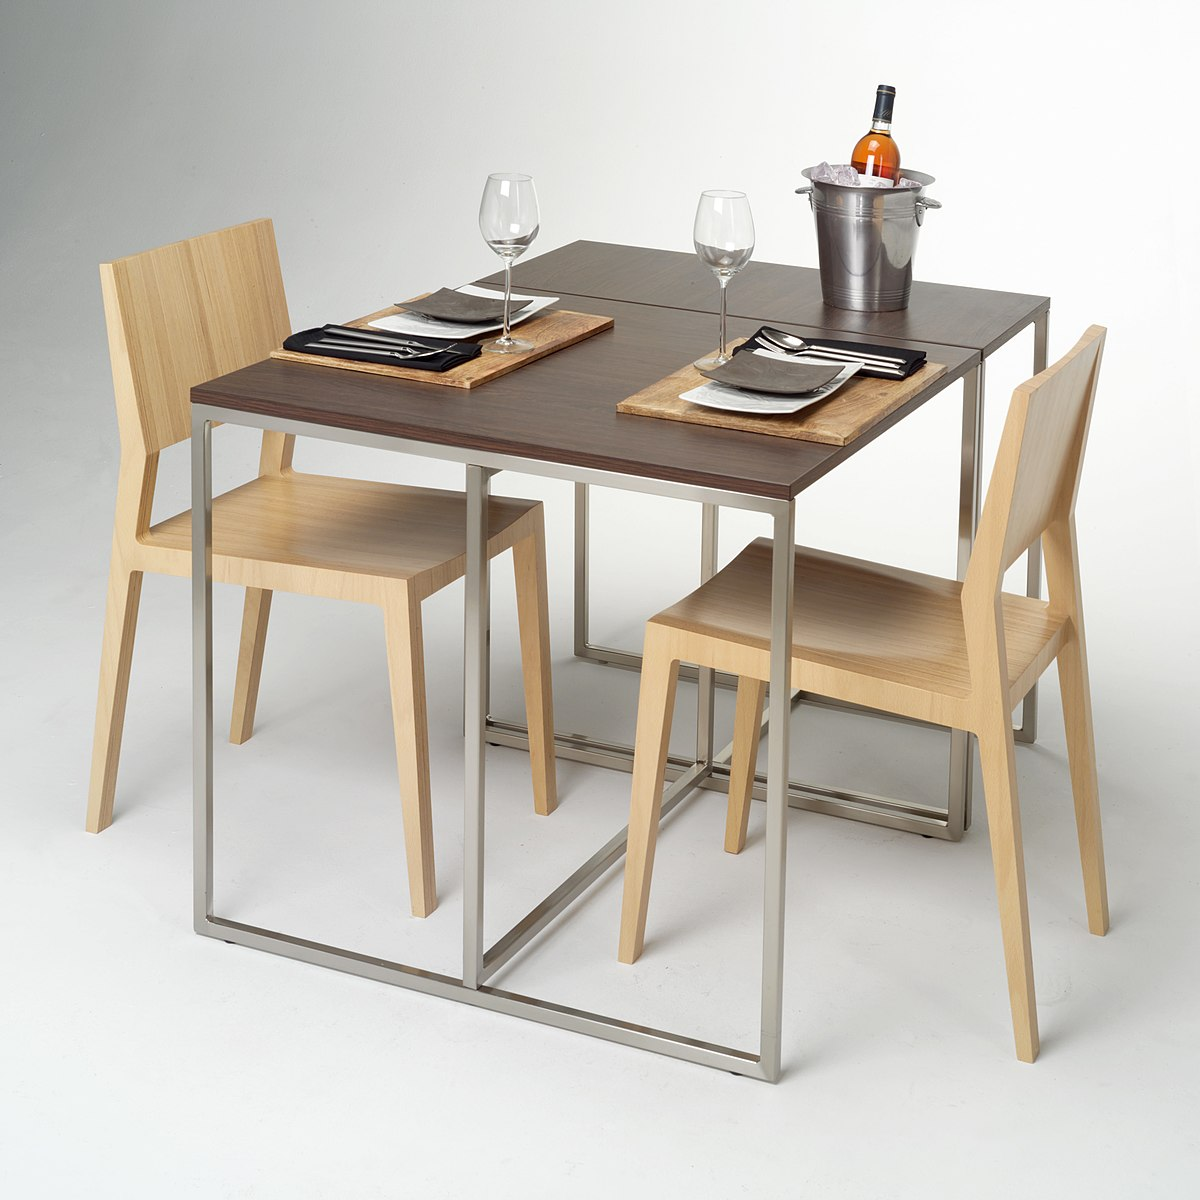 Furniture wikipedia for Contemporary dining table designs